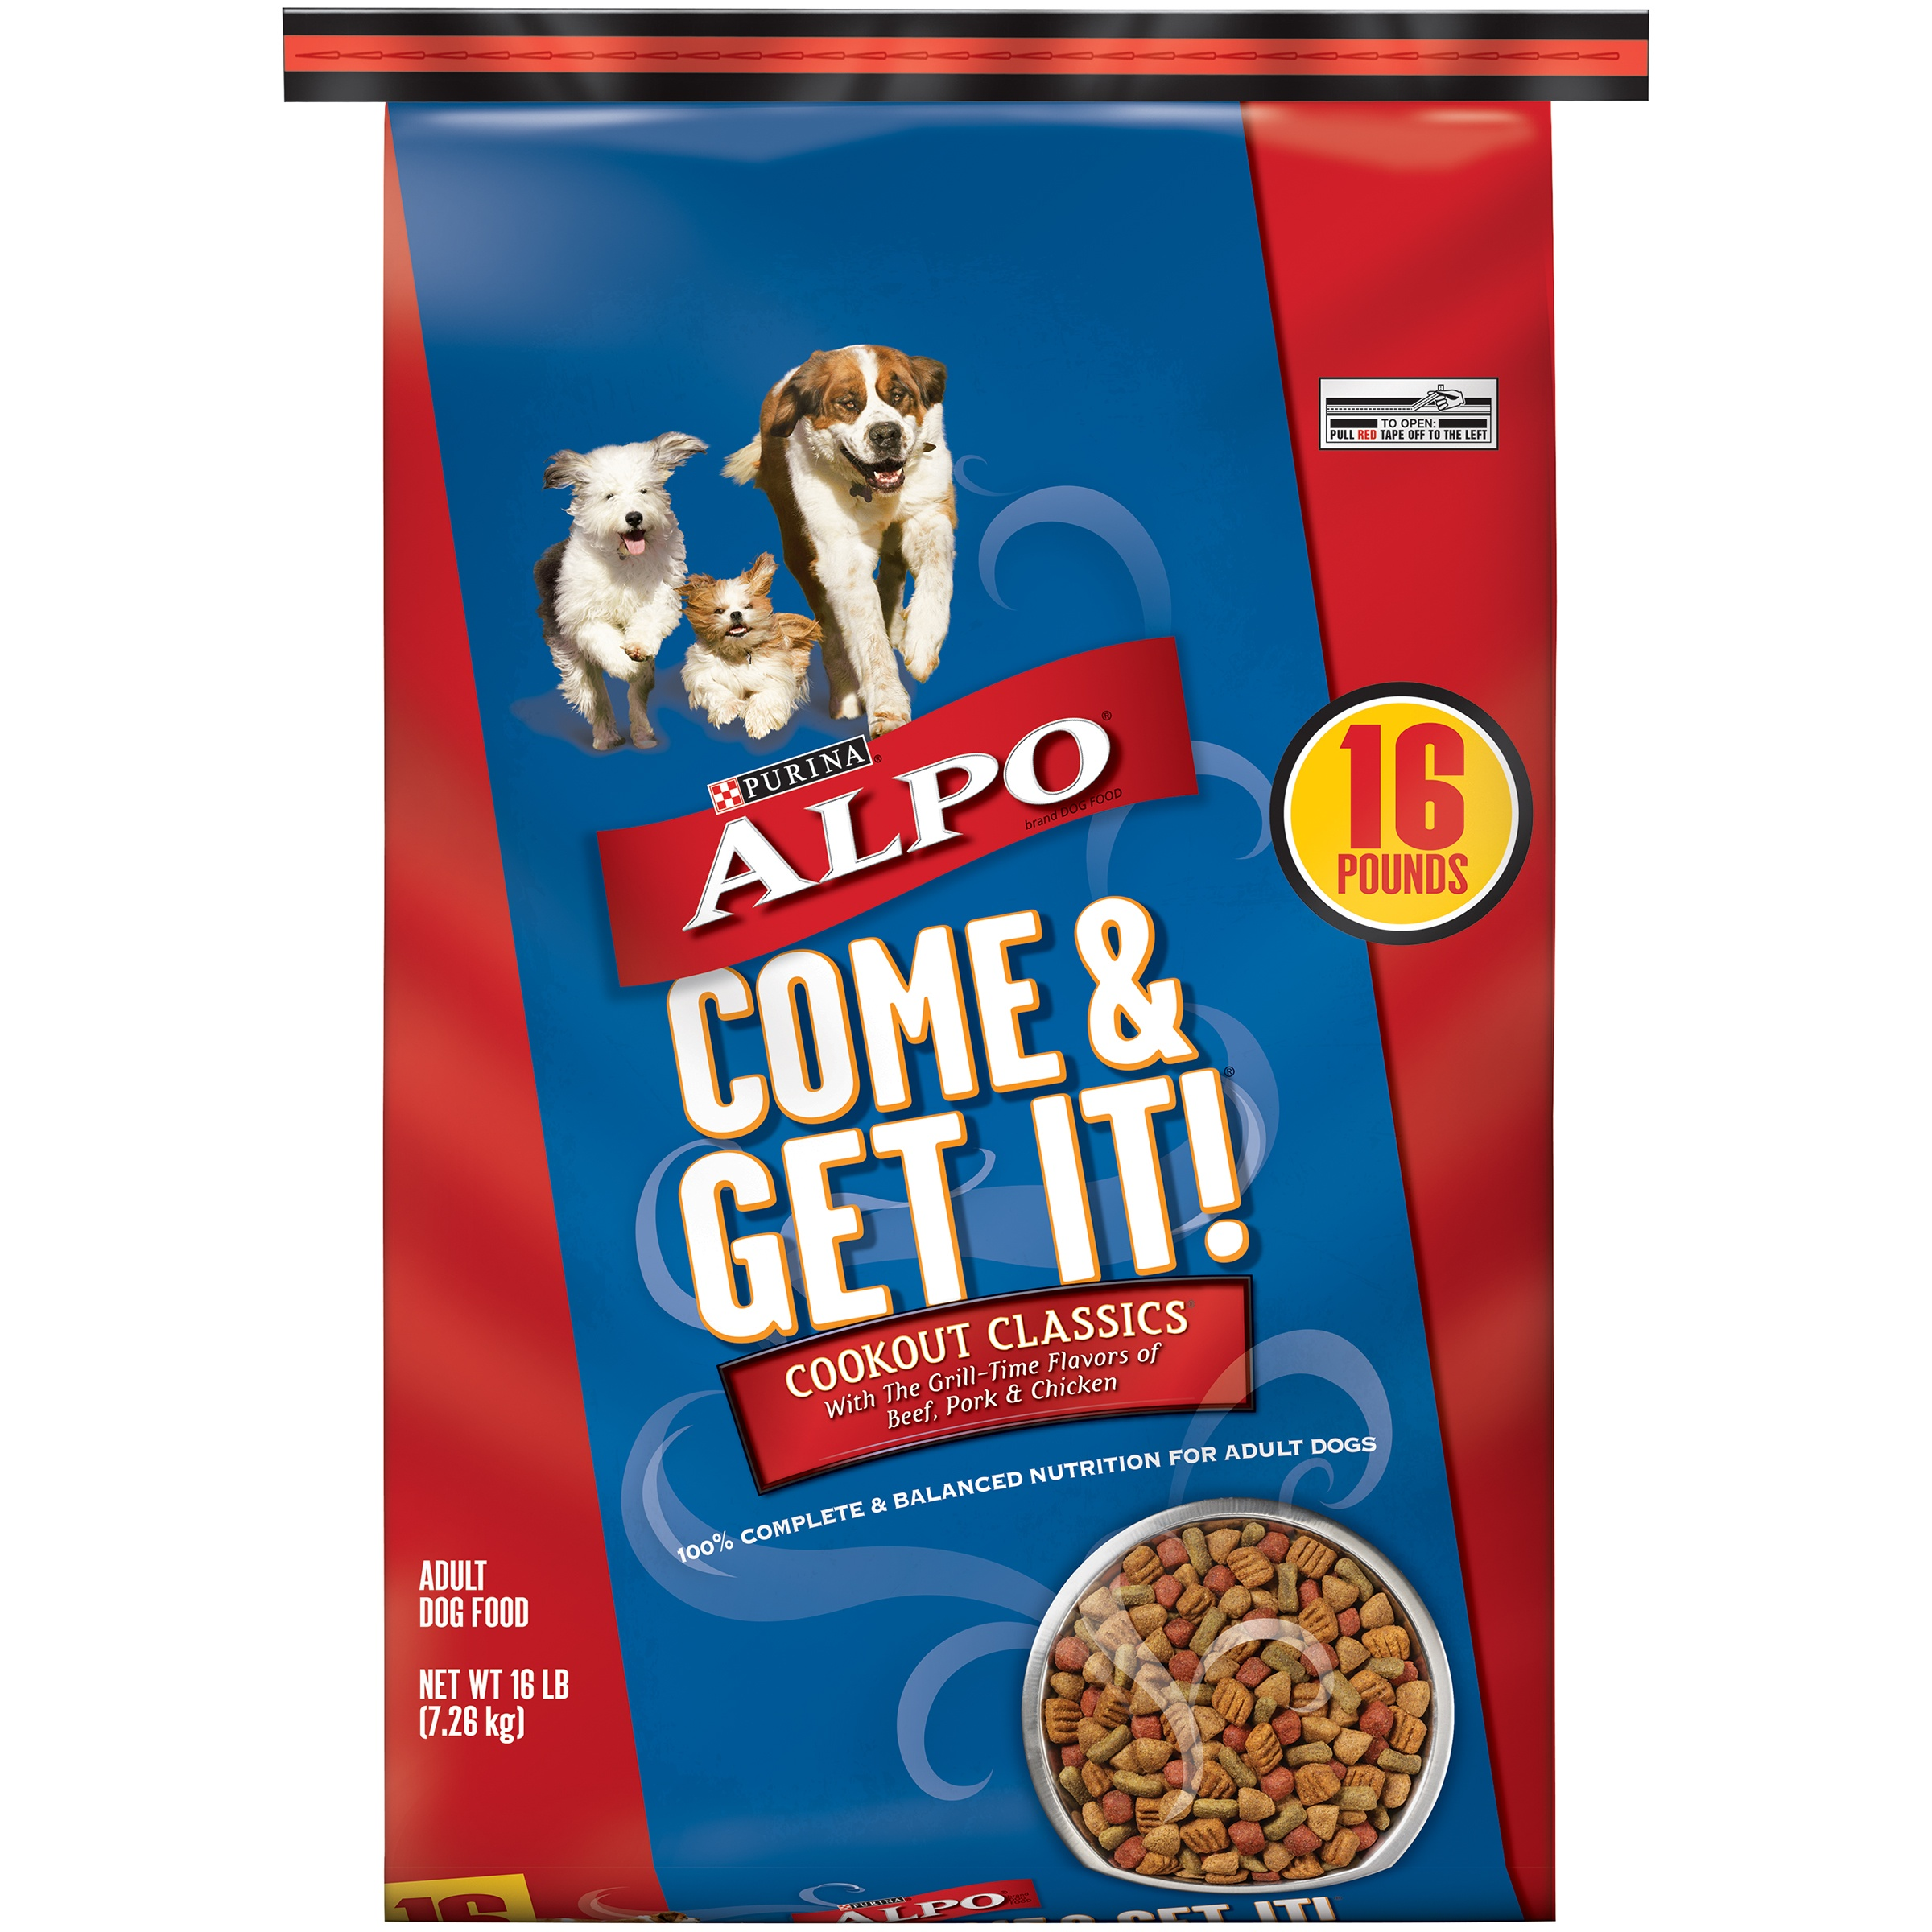 ALPO Come & Get It! Cookout Classics Adult Dry Dog Food (Various Sizes) by Nestle Purina Petcare Company